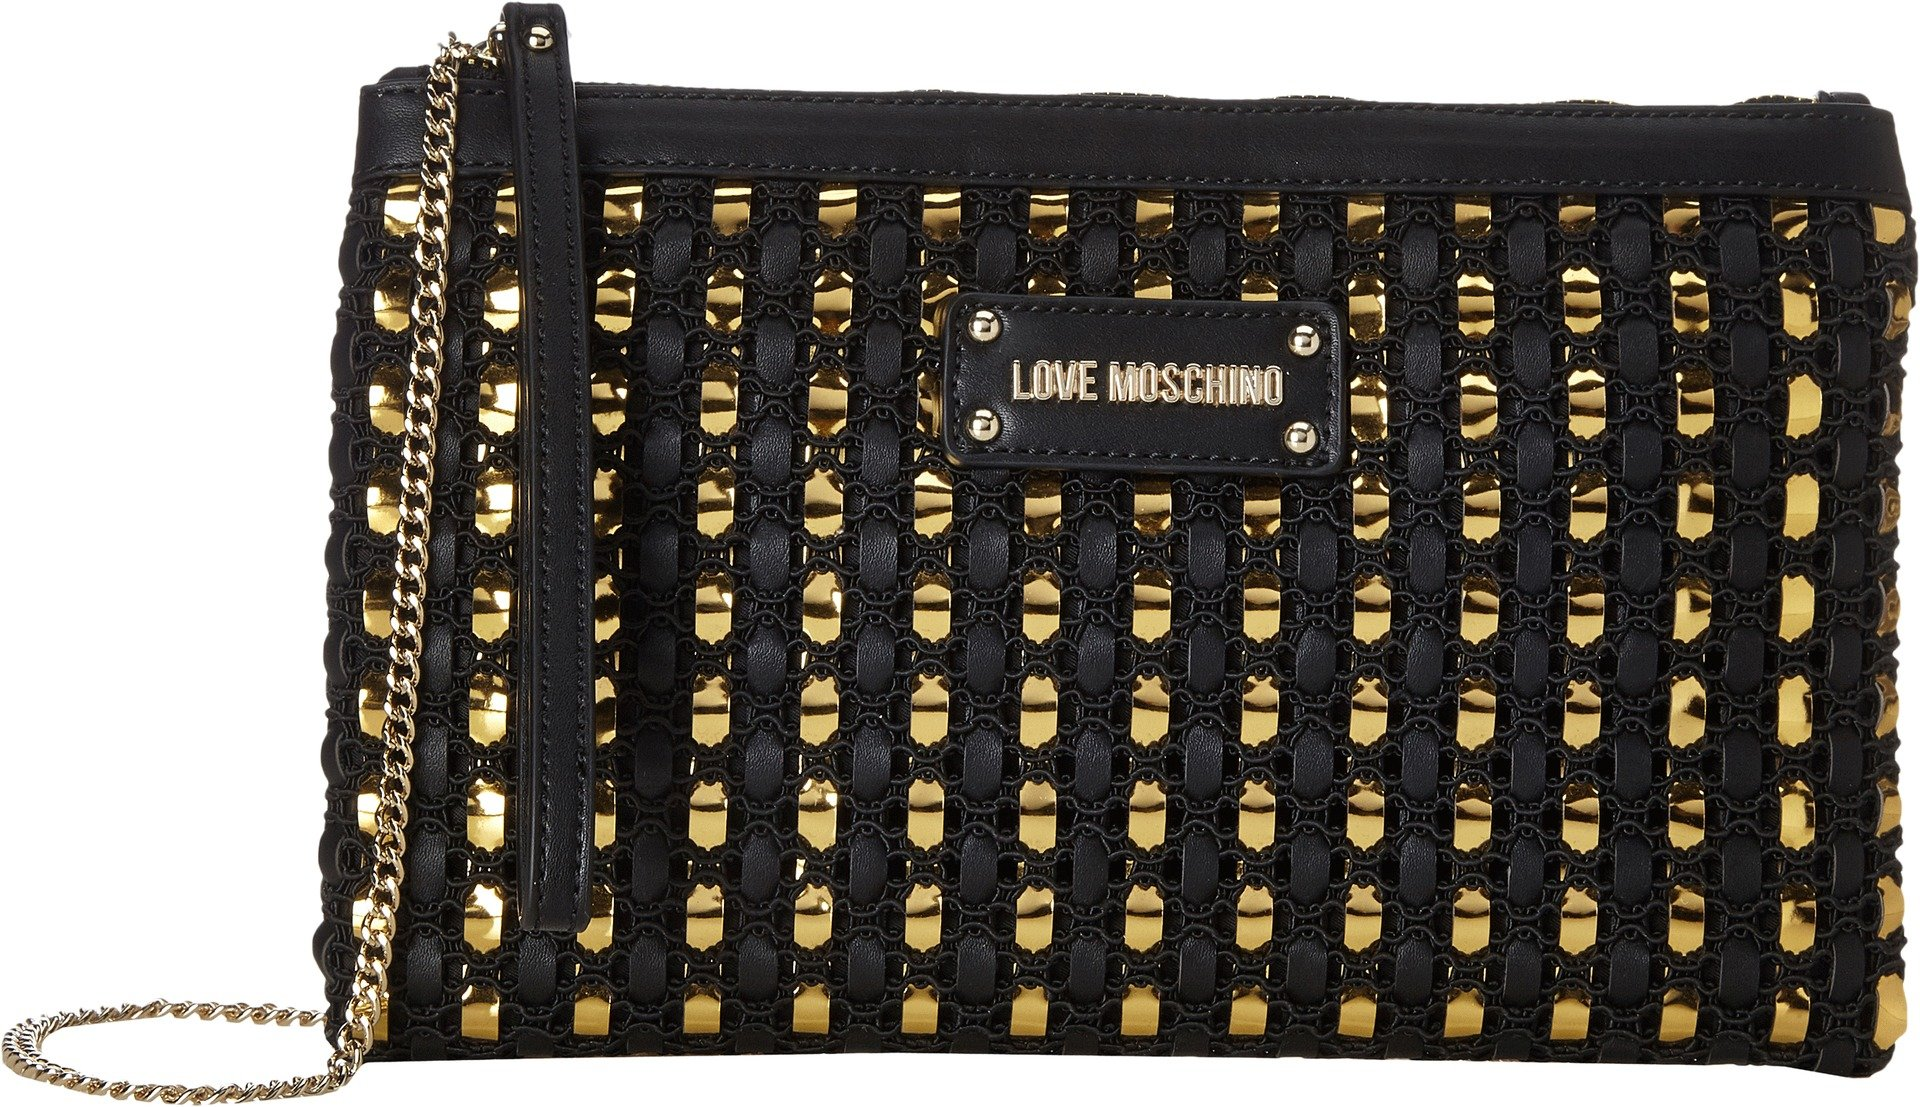 LOVE Moschino Women's Crossbody Chain Strap Fantasy Black One Size by Love Moschino (Image #1)